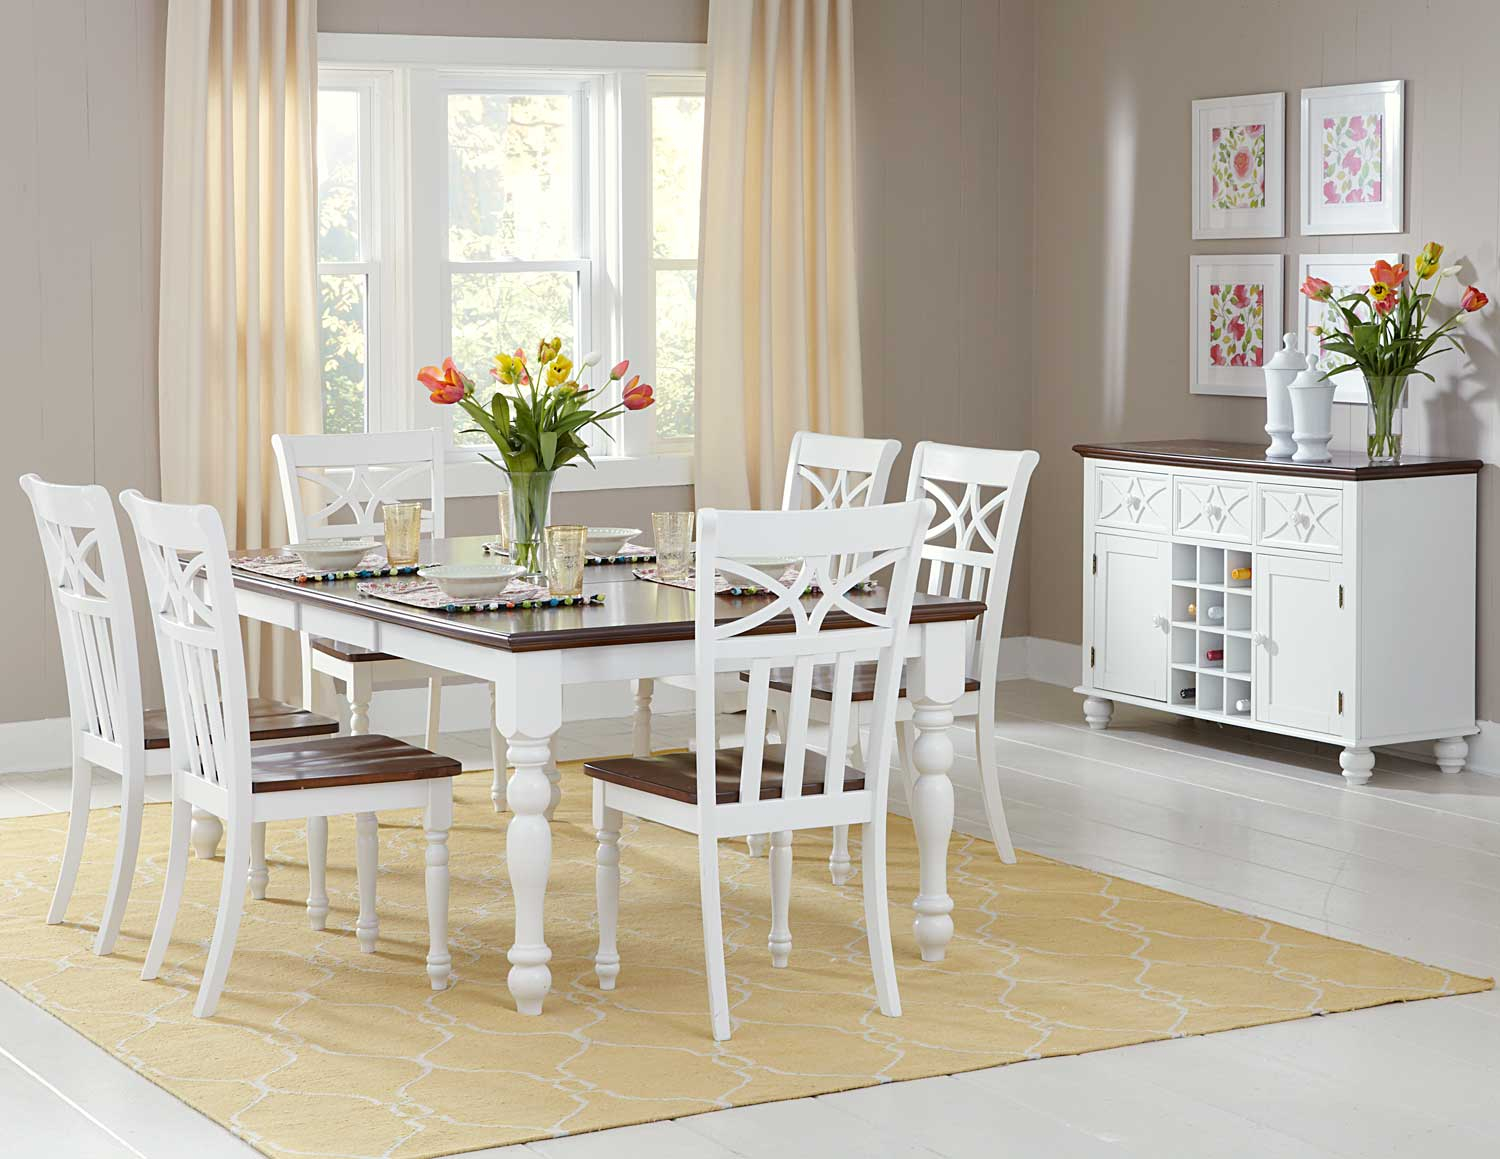 Homelegance sanibel dining set cherry white d2119w 78 for Beautiful white dining rooms